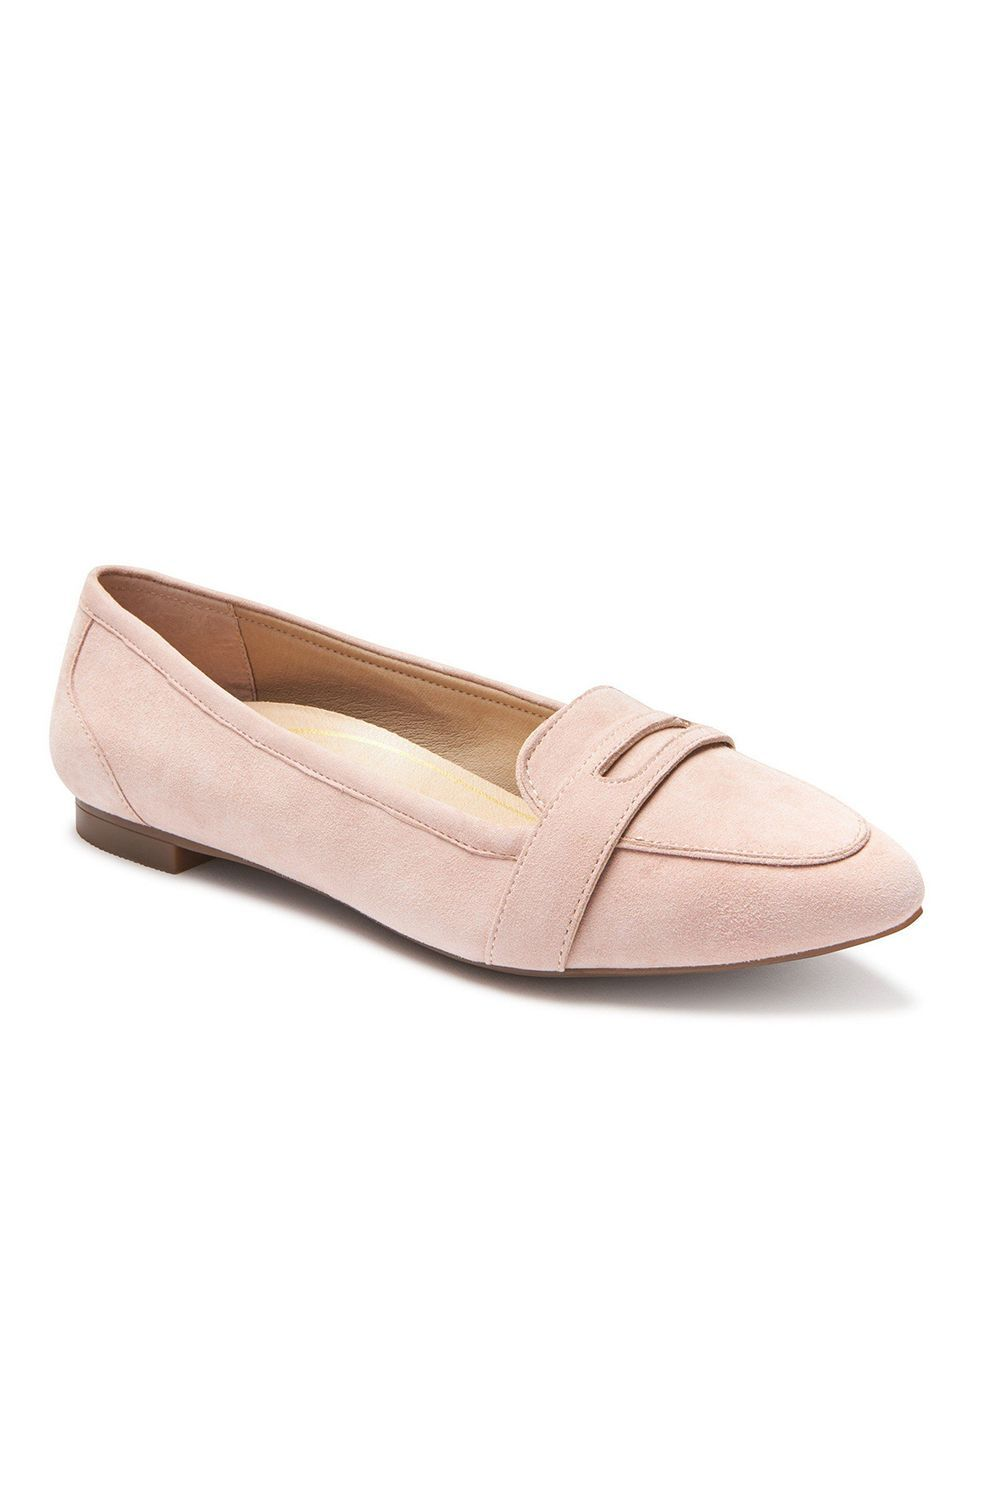 flats for work with arch support